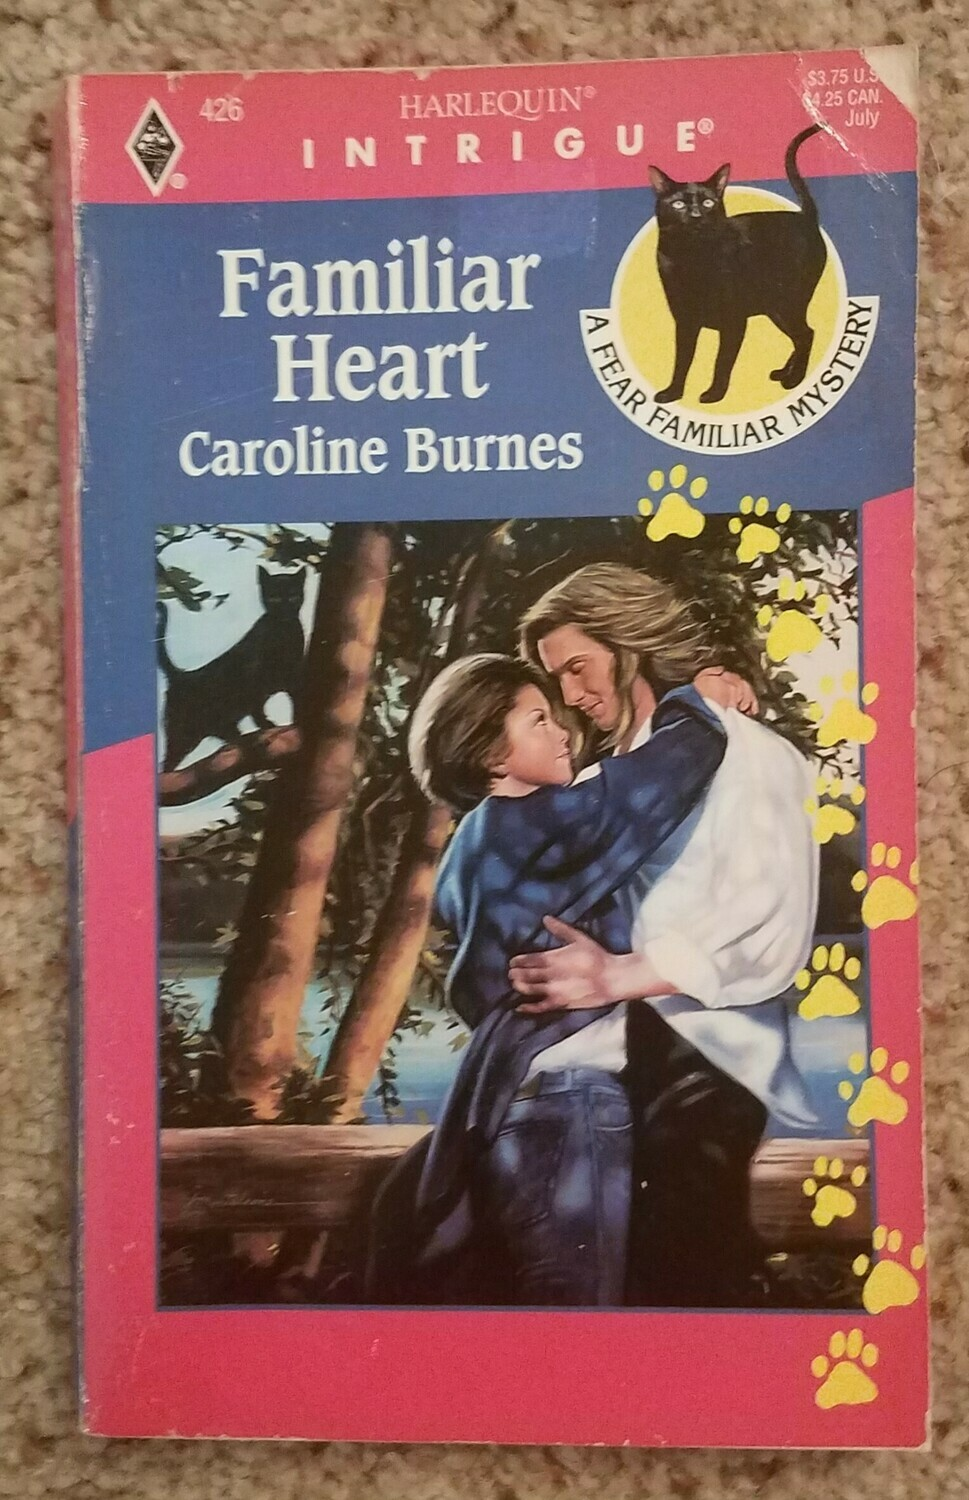 Familiar Heart by Caroline Burnes